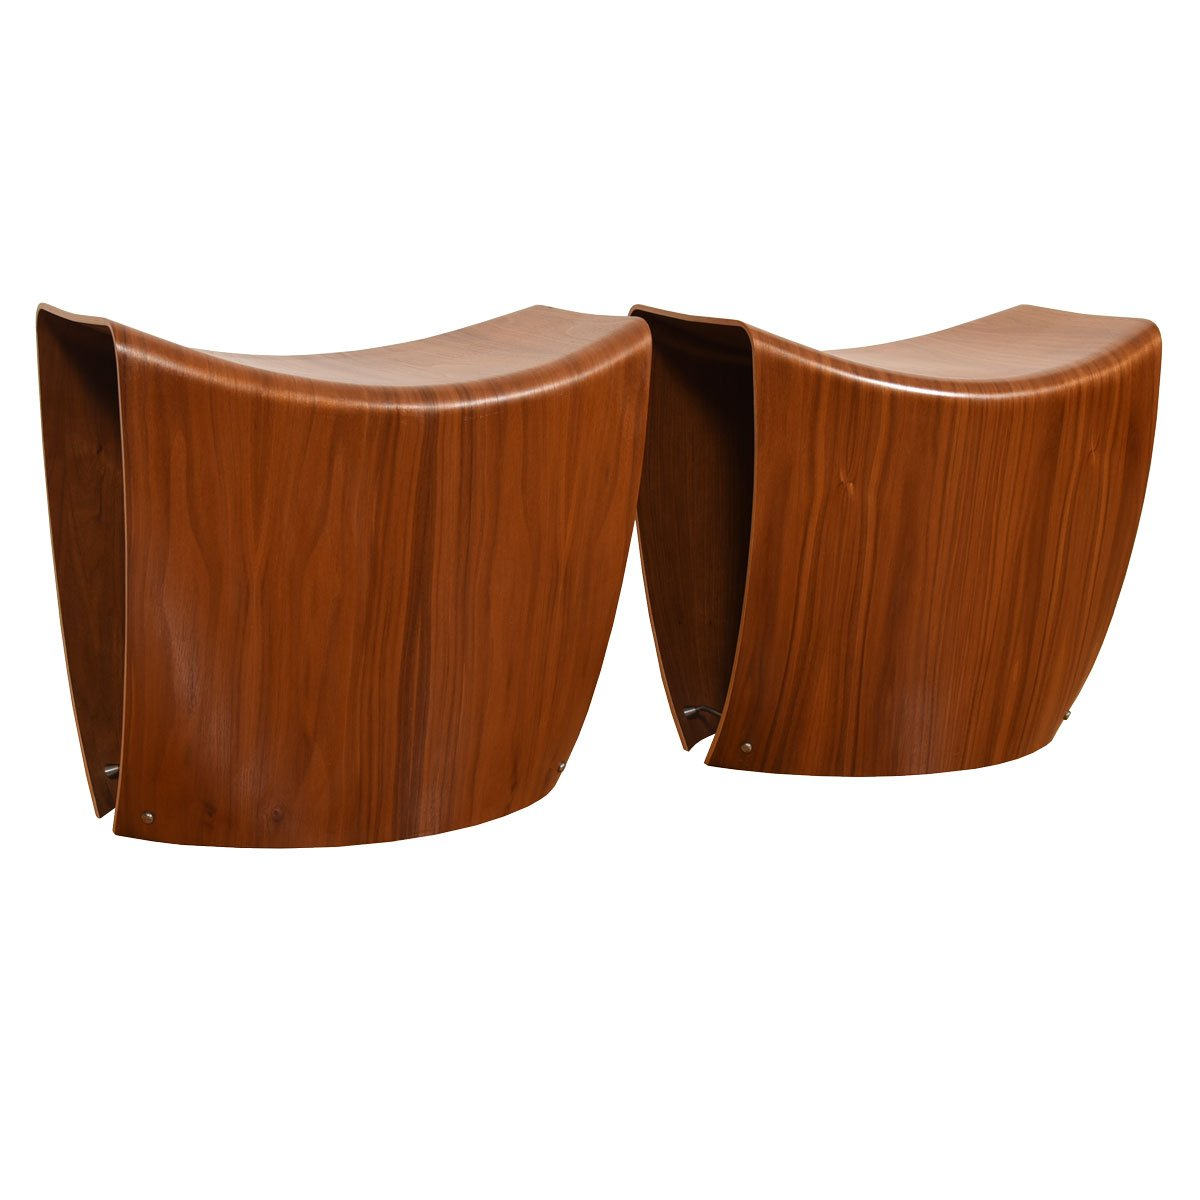 Pair of Walnut Danish Modern Contemporary Stools / Ottomans